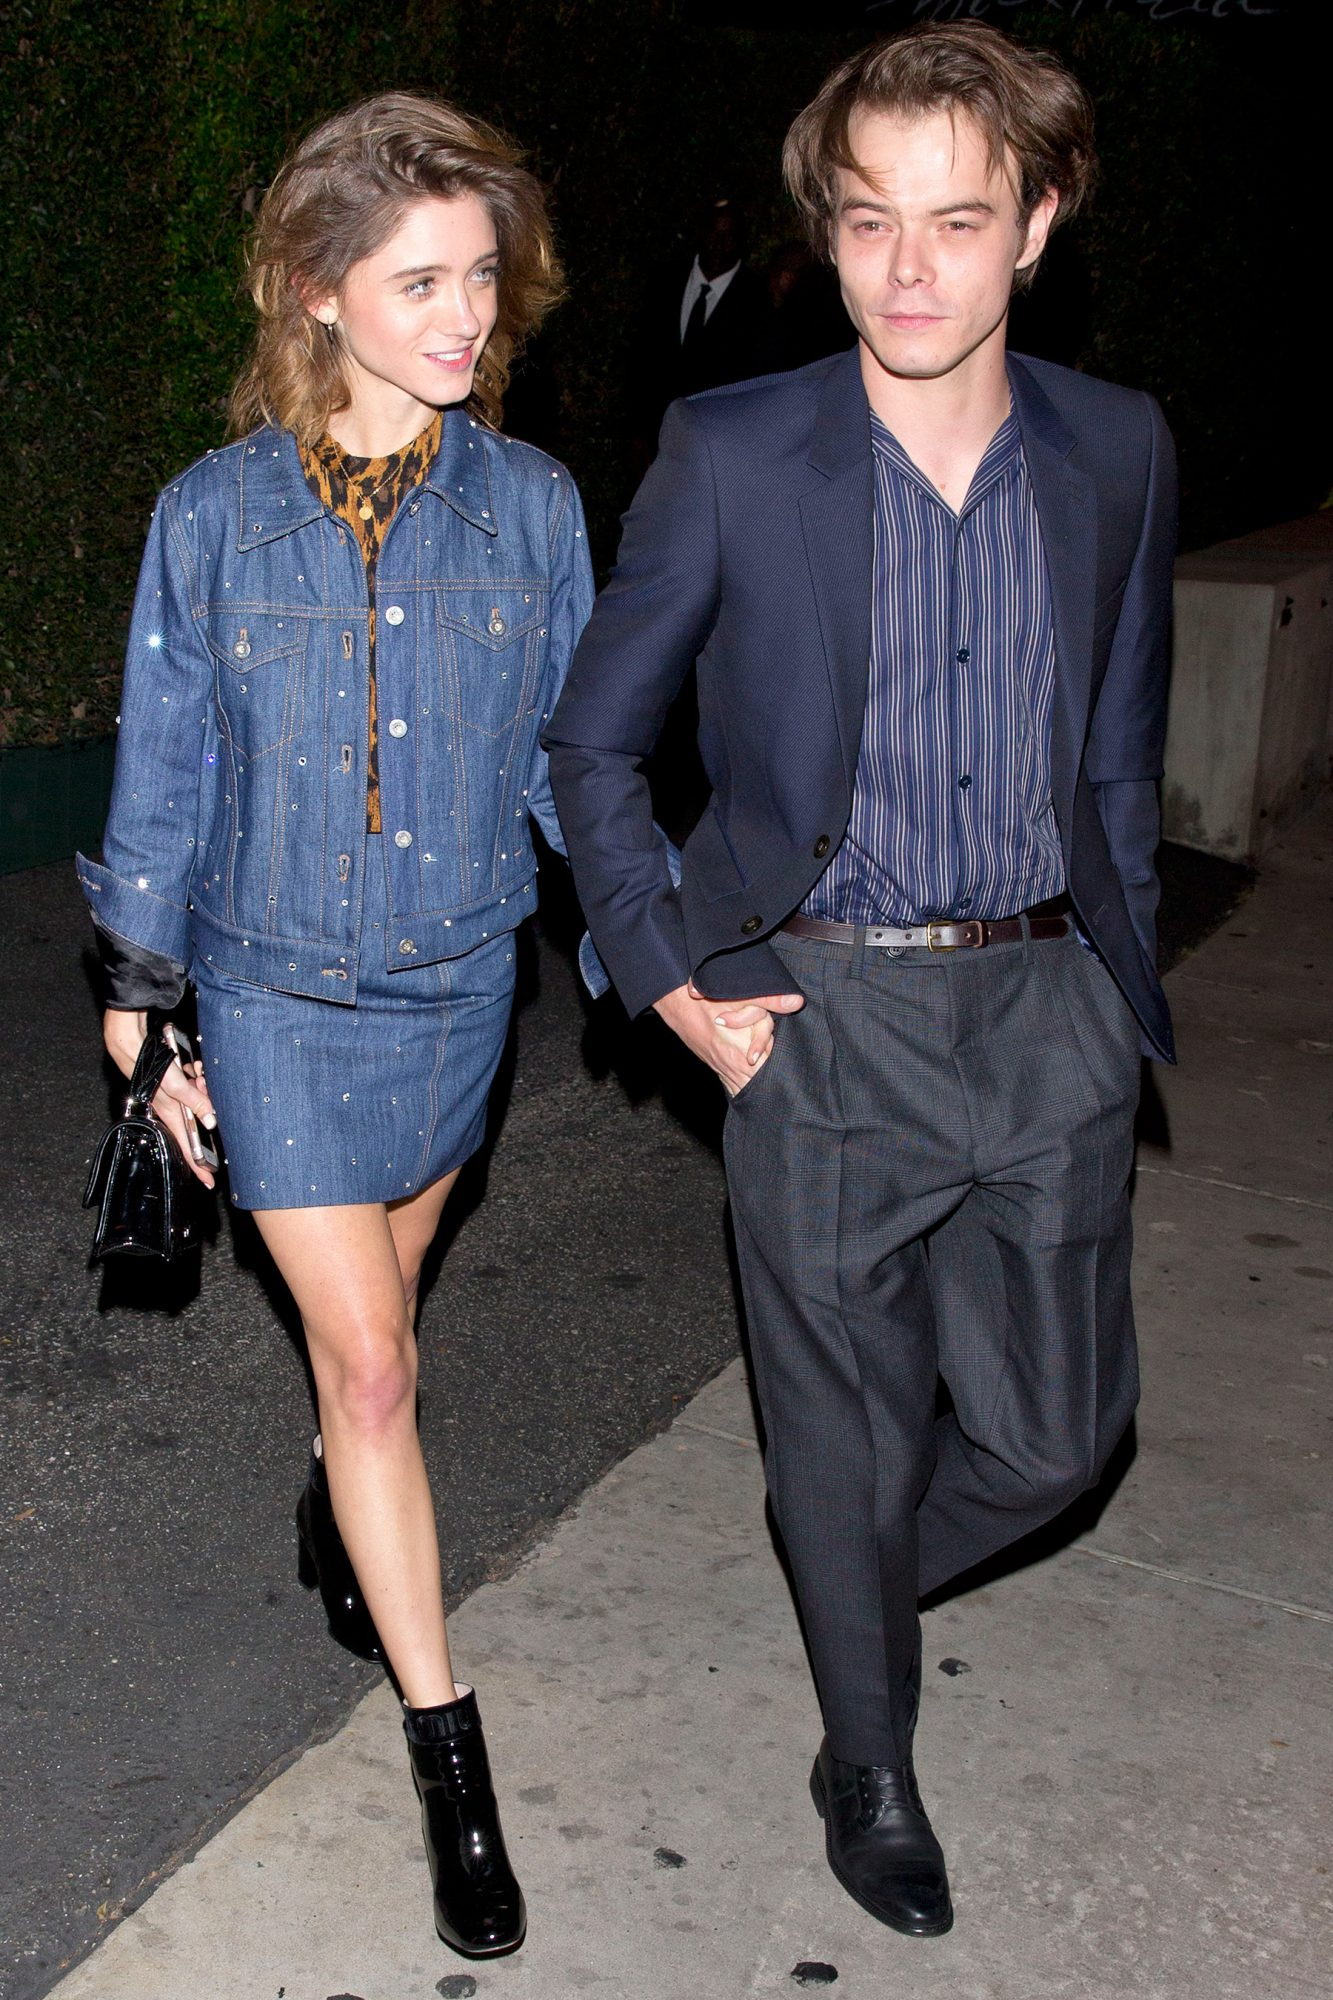 Stranger Things stars, Natalia Dyer and Charlie Heaton hold hands as they leave the 'MIU MIU' clothing launch in West Hollywood, CA